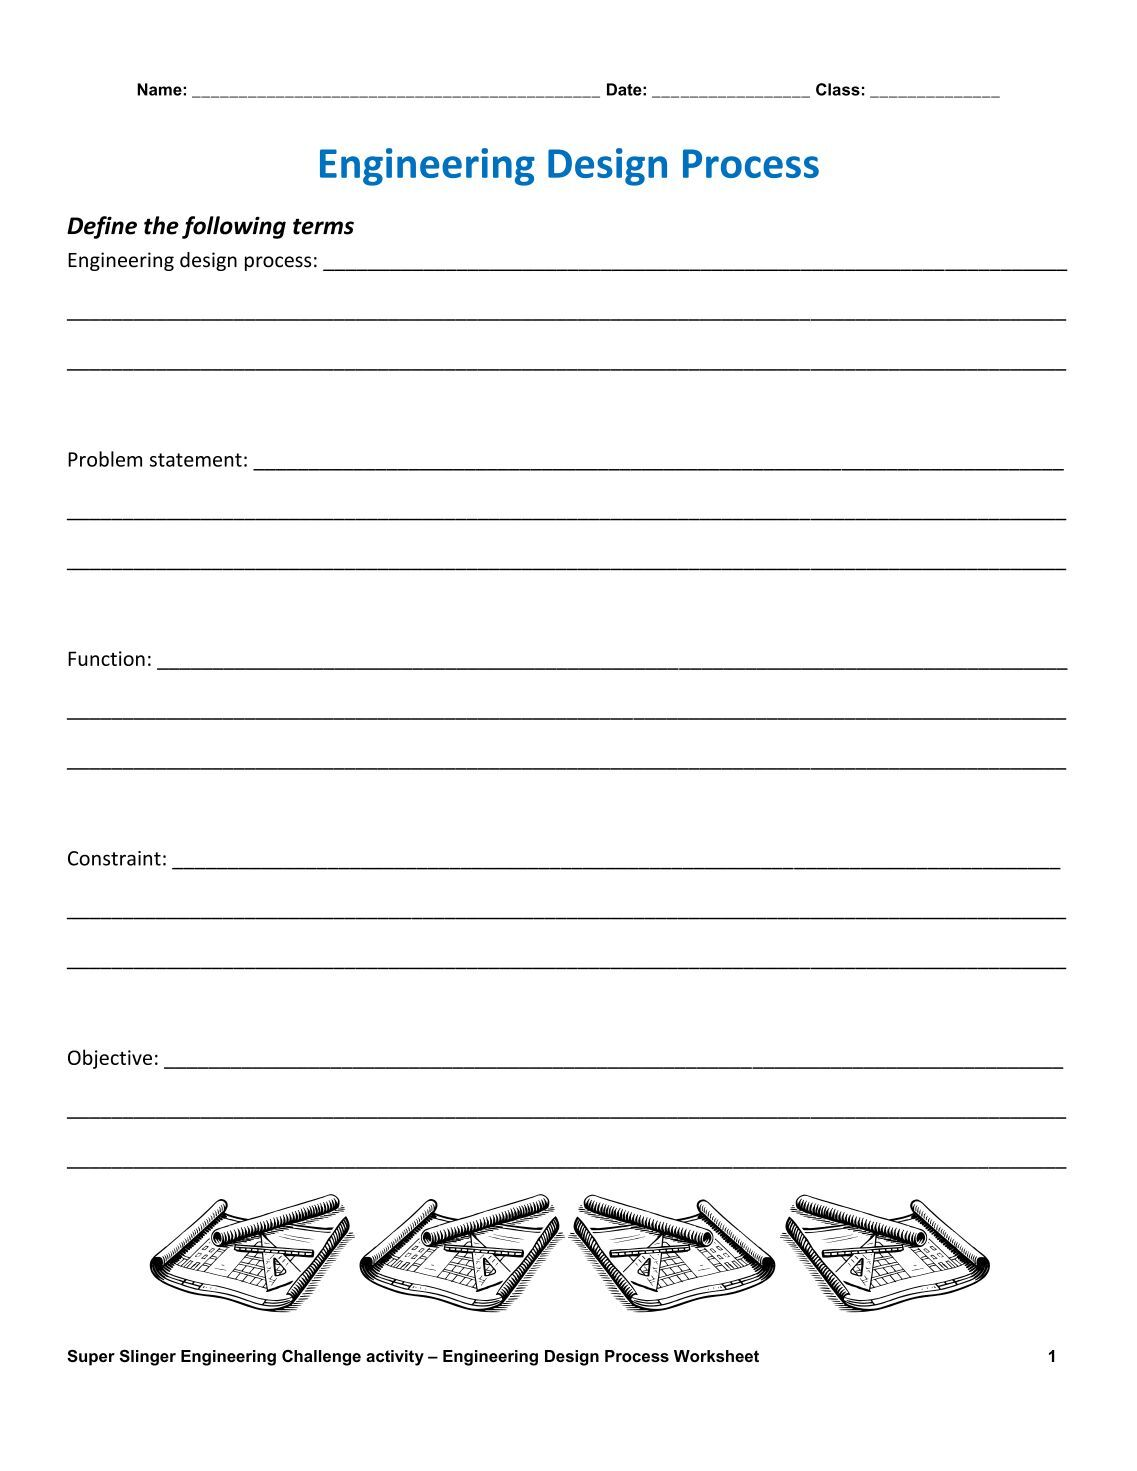 Uncategorized Engineering Design Process Worksheet 180 free magazines from teachengineering org org